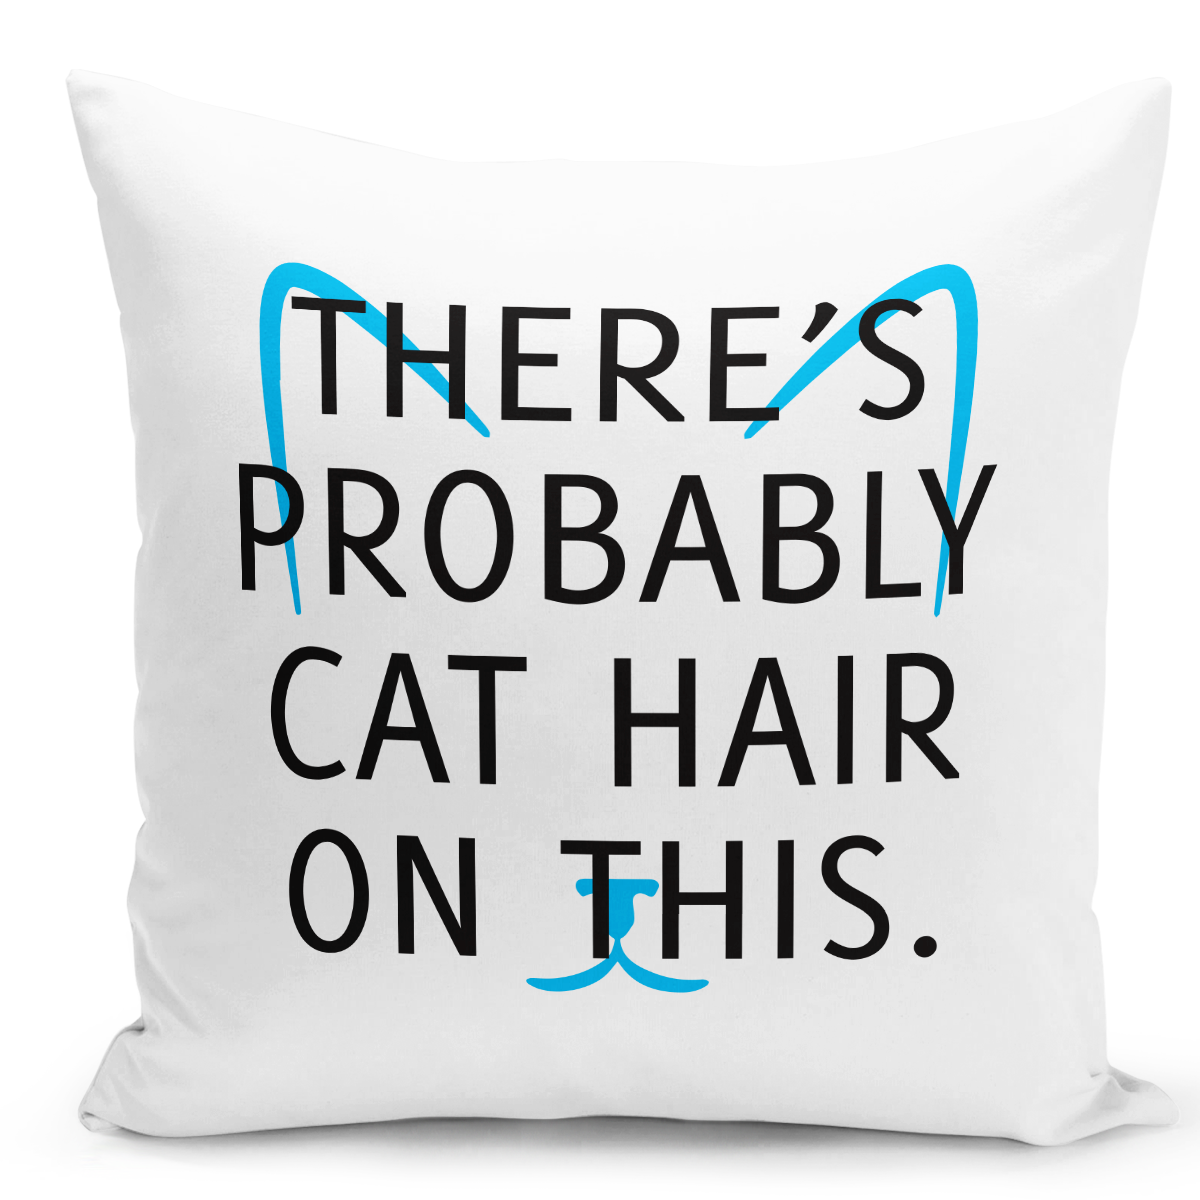 White-Throw-Pillow-There's-Probably-Cat-Hair-On-This-Pets-Pillow-Questroom-Decor---High-Quality-White-16-x-16-inch-Square-Home-Office-Decor-Accent-Pillow-